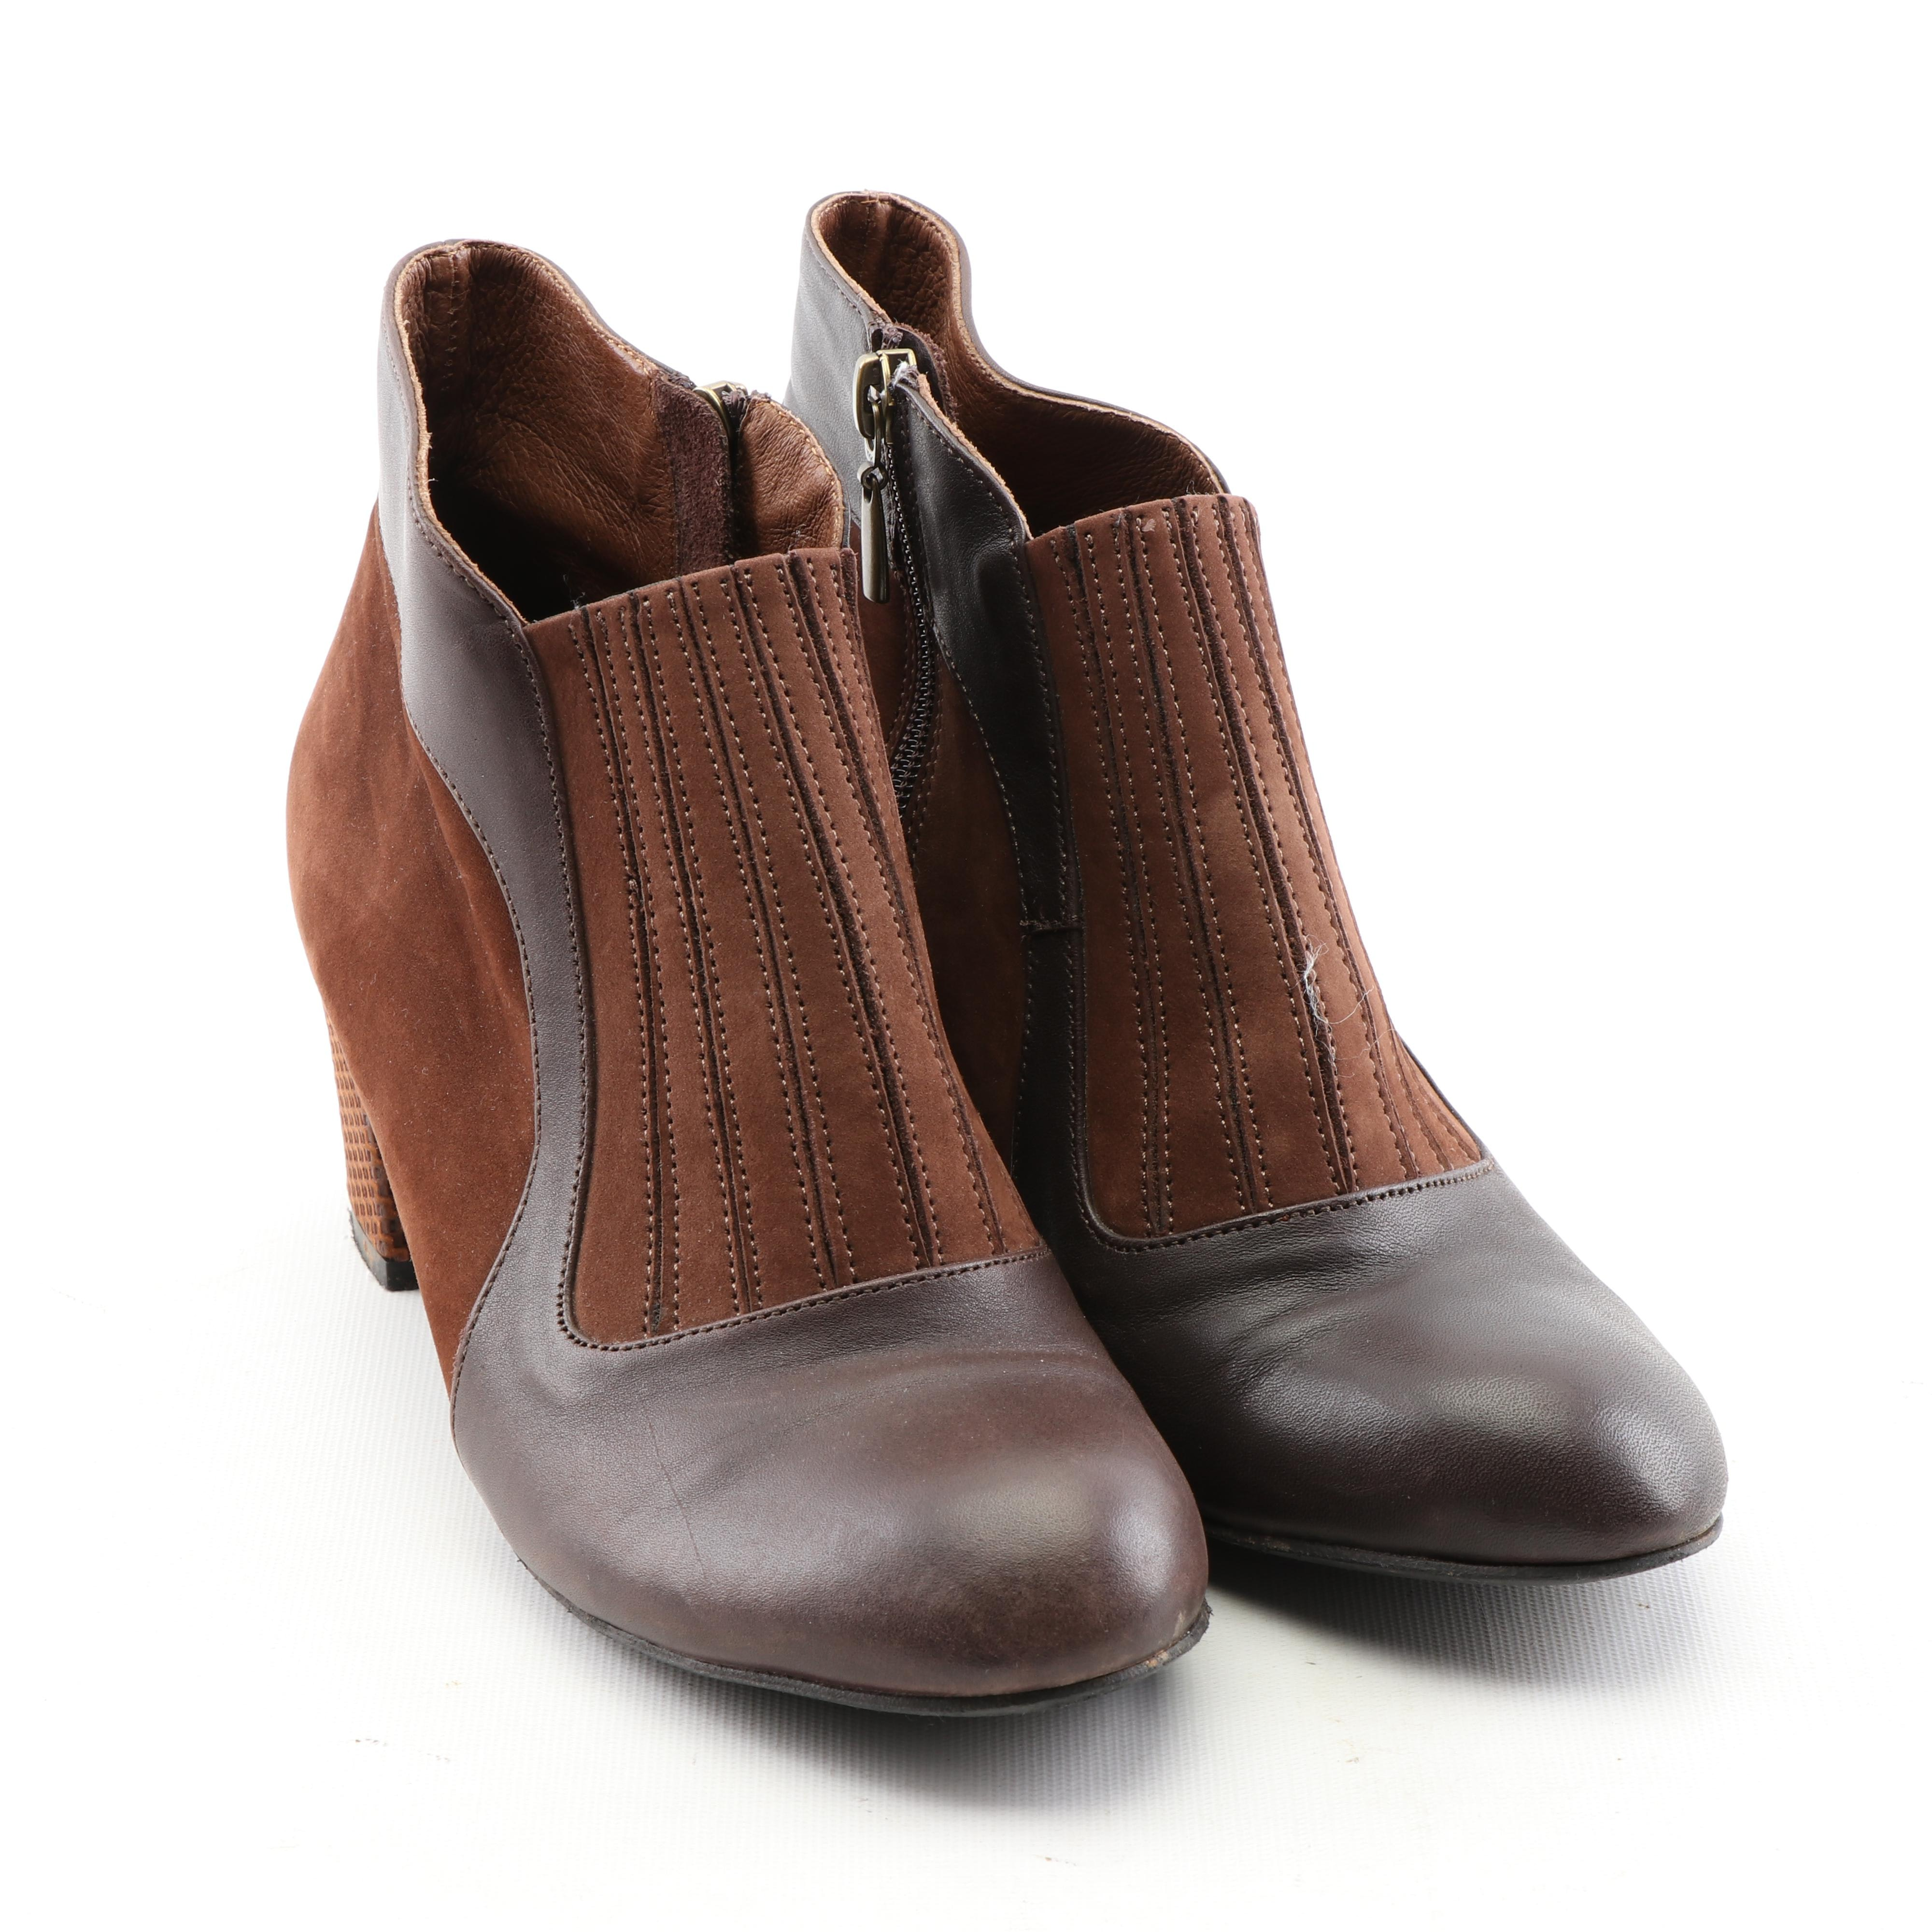 Women's Daniella Lehavi Brown Leather and Suede Ankle Booties